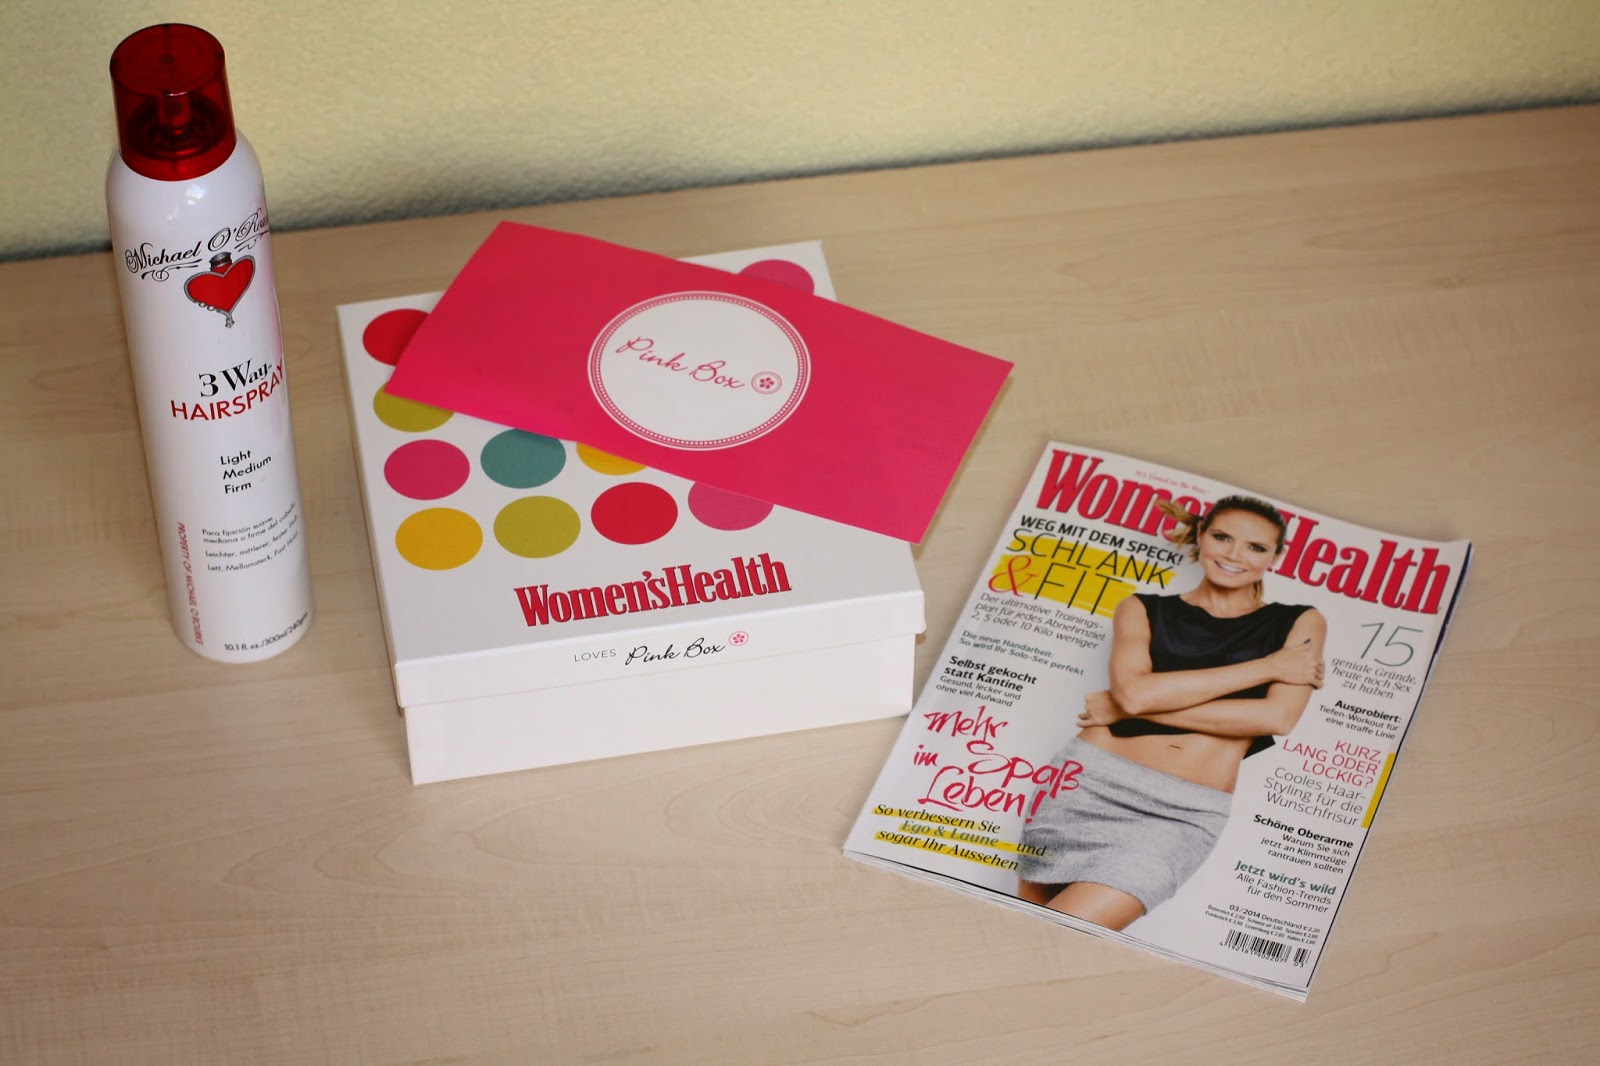 Pink Box März, Special Pink Box, Pink Bos, Patrizia Paul, Beauty Box, Woman's Health Pink Box